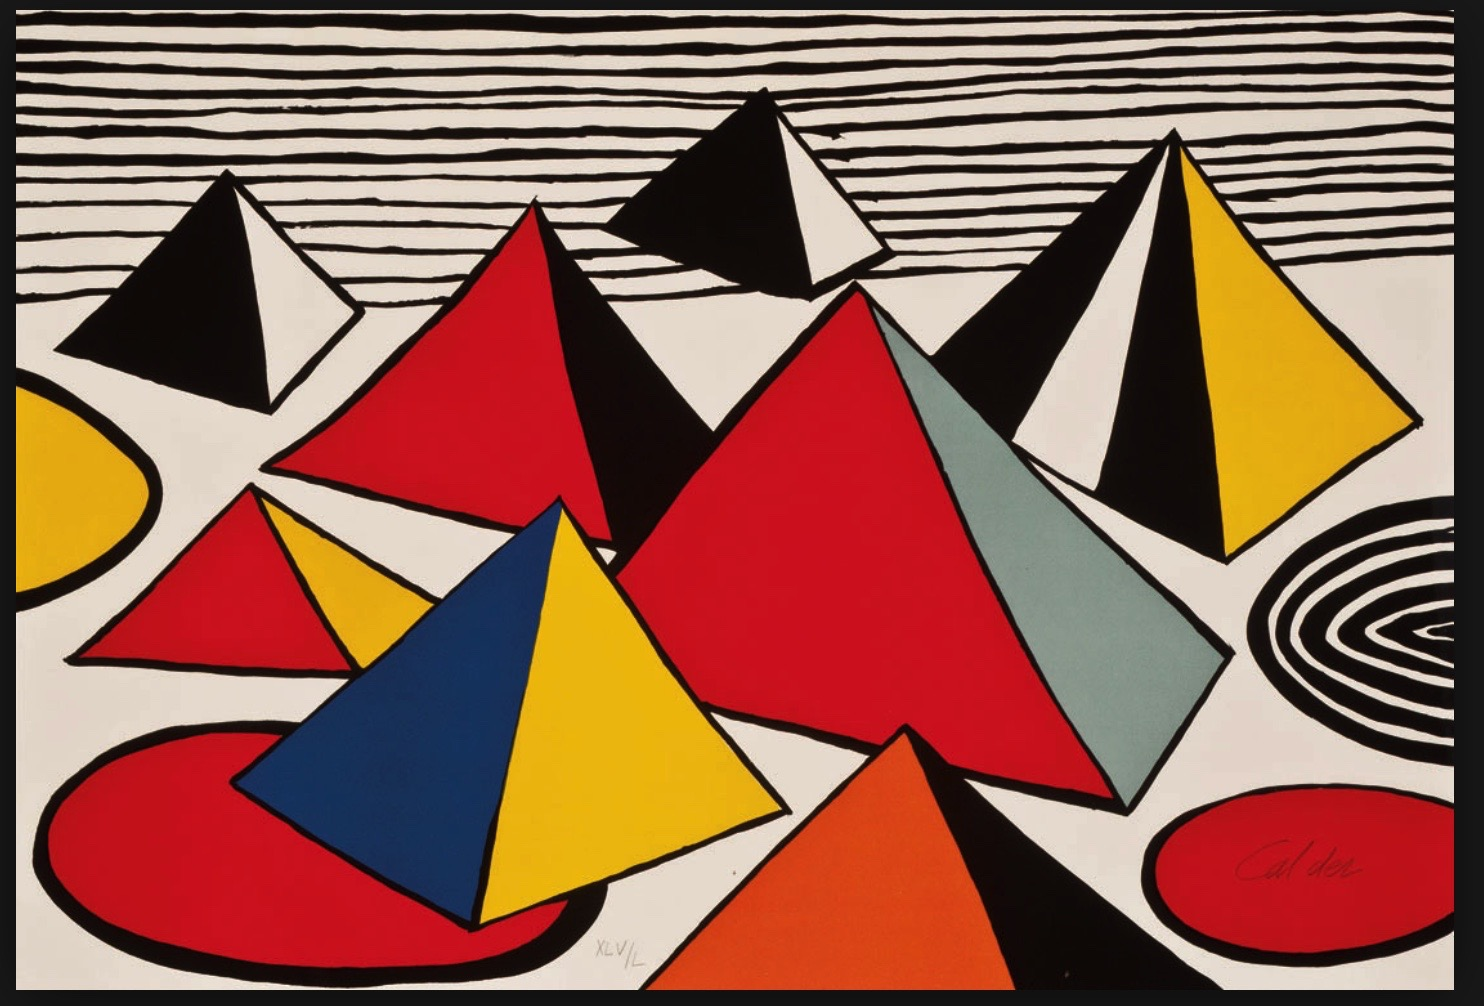 ALEXANDER CALDER BMW ART CAReric kim screenshot_869